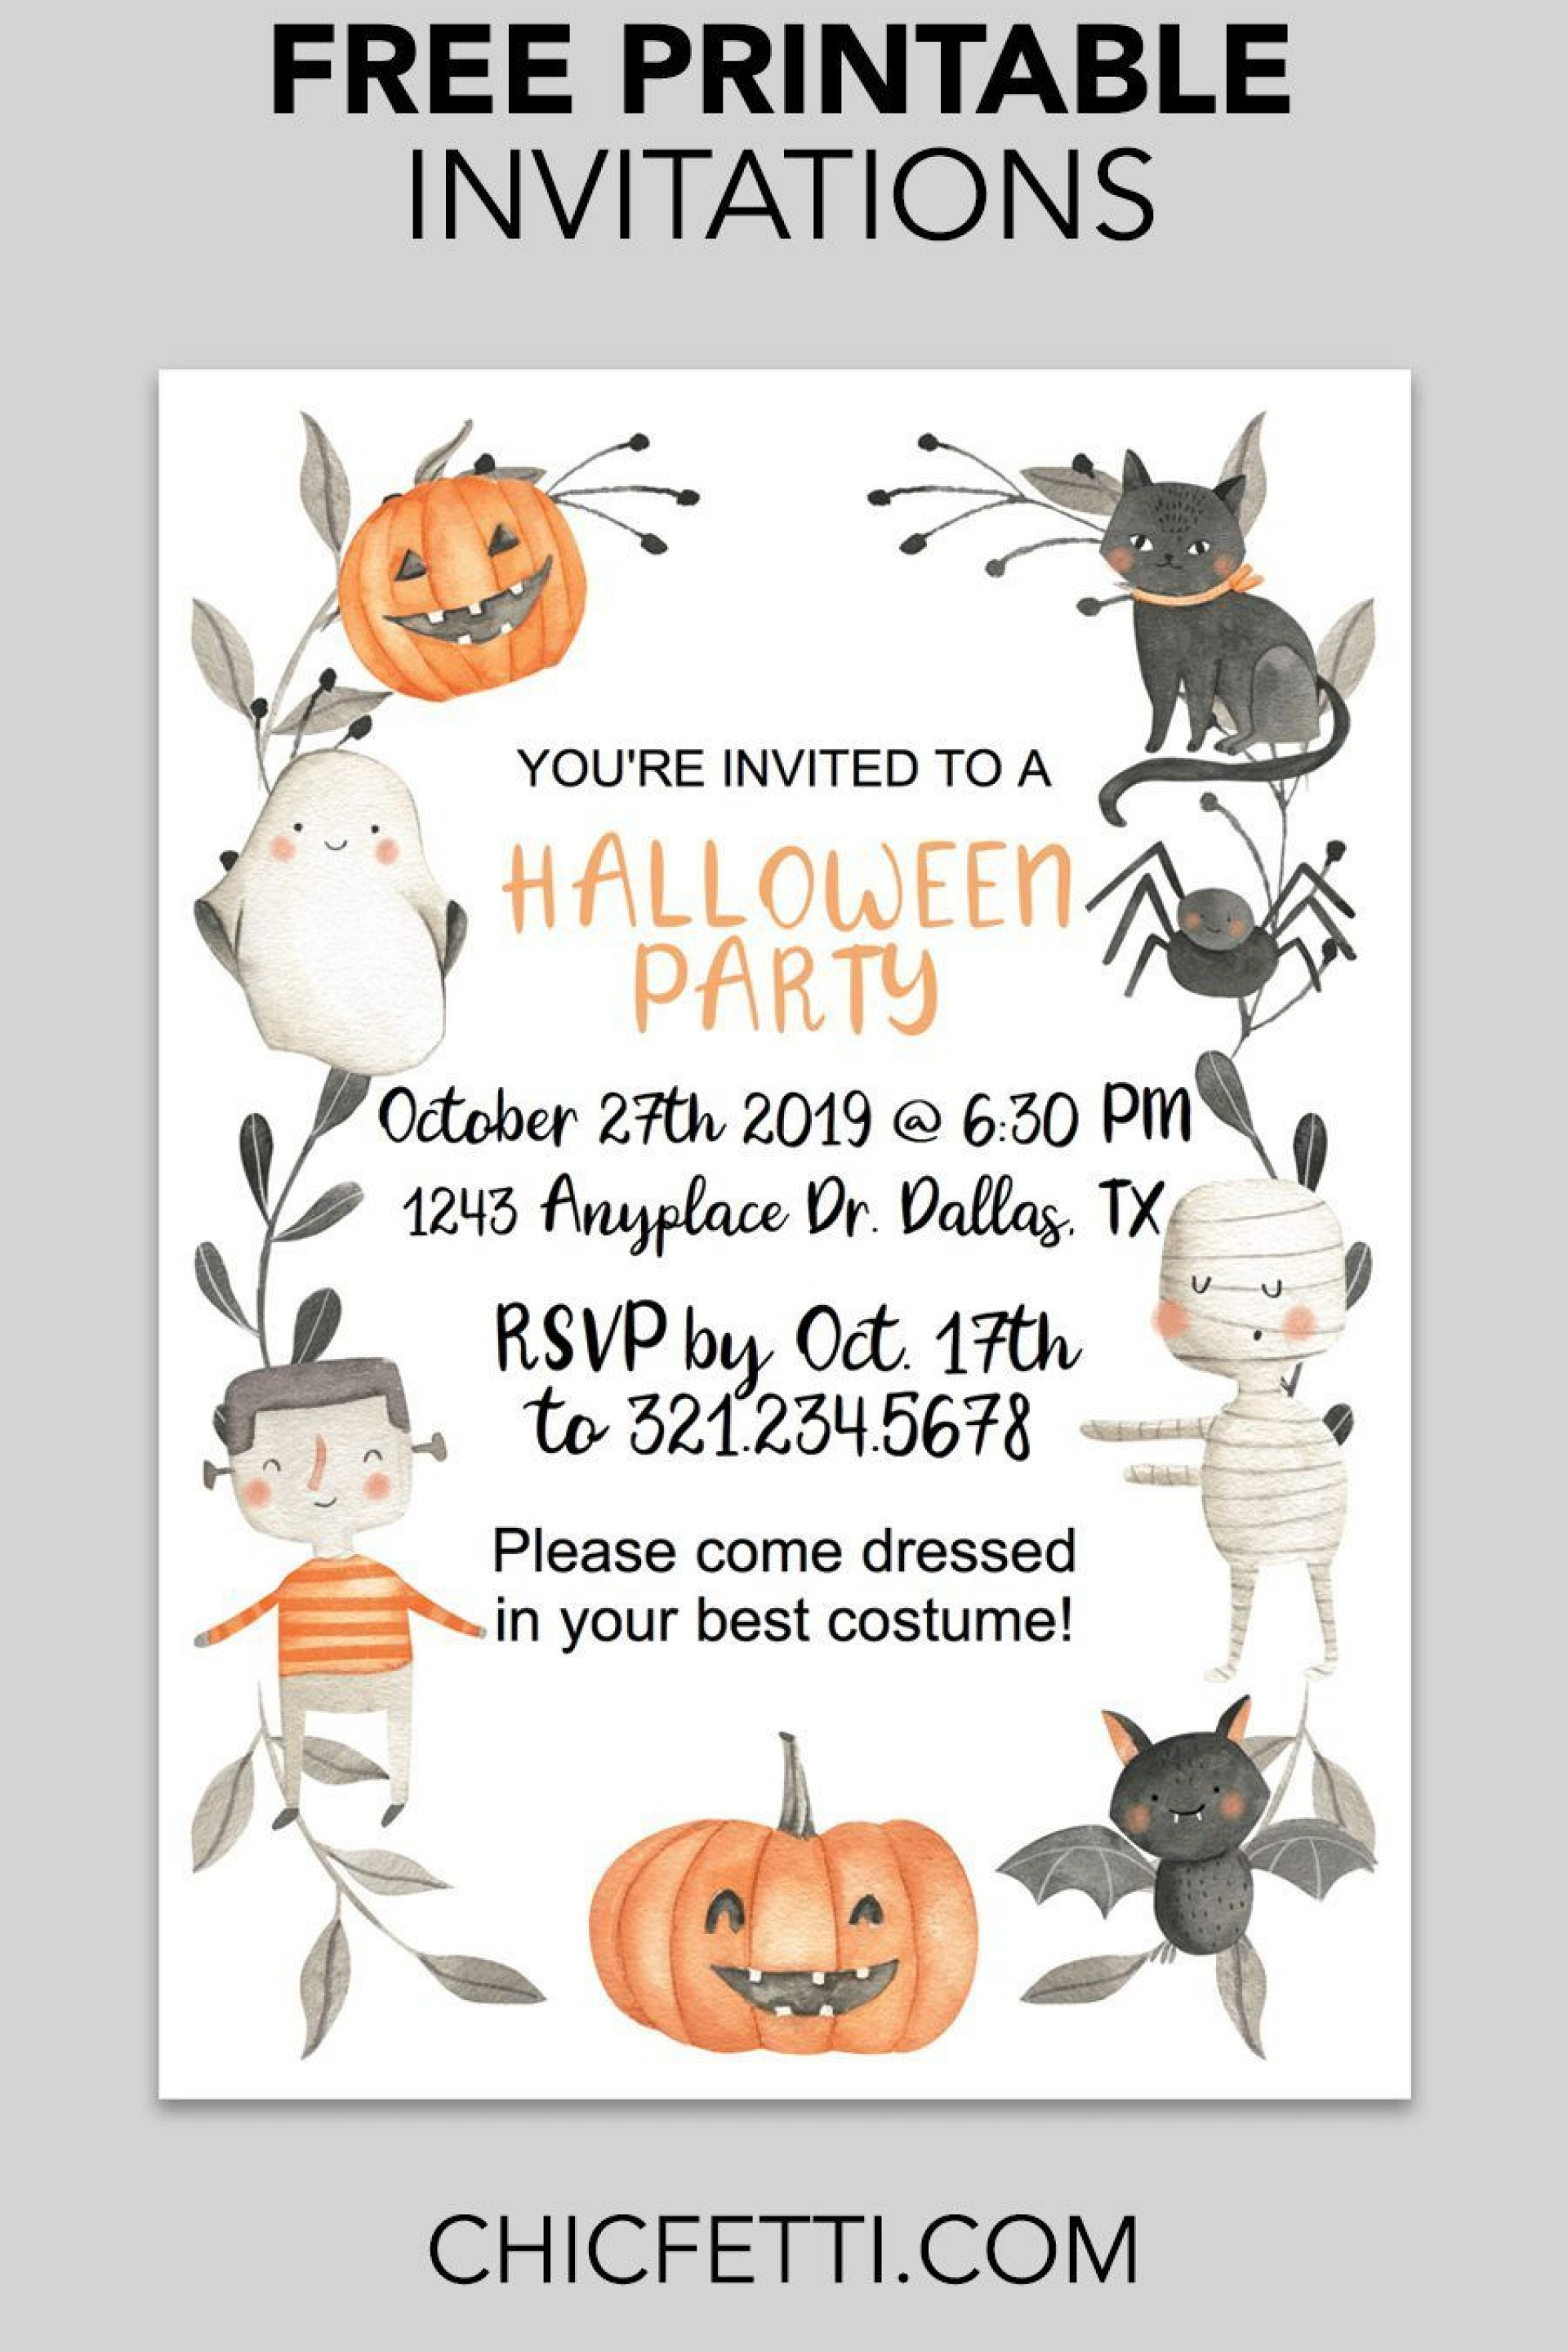 002 Awesome Halloween Party Invite Template High Definition  Spooky Invitation Free Printable Birthday Download1920